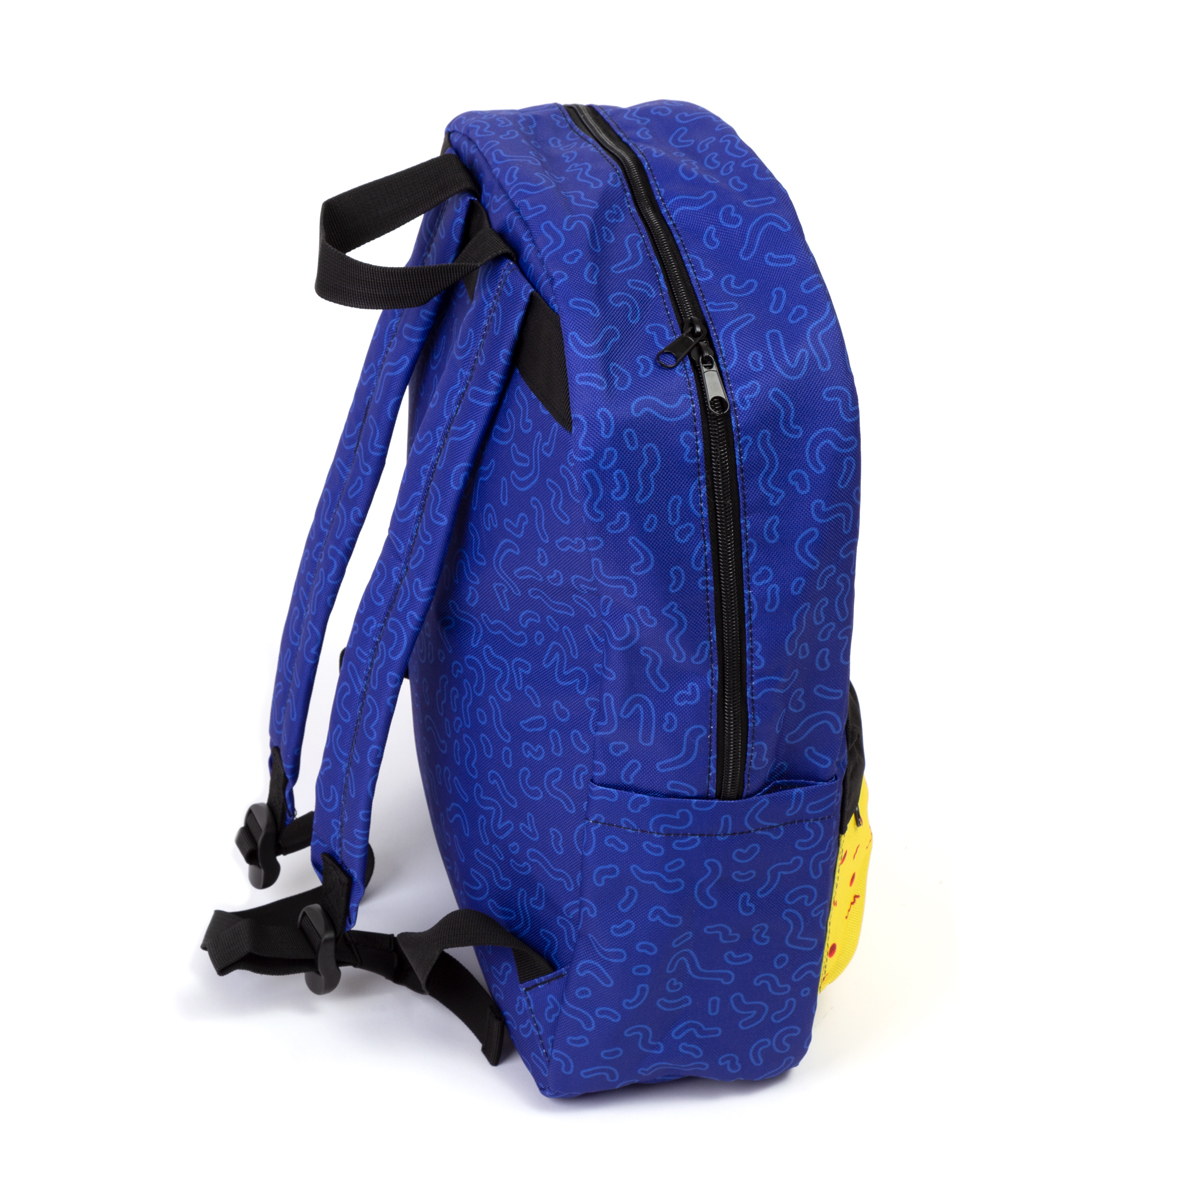 Double Dare Live Backpack